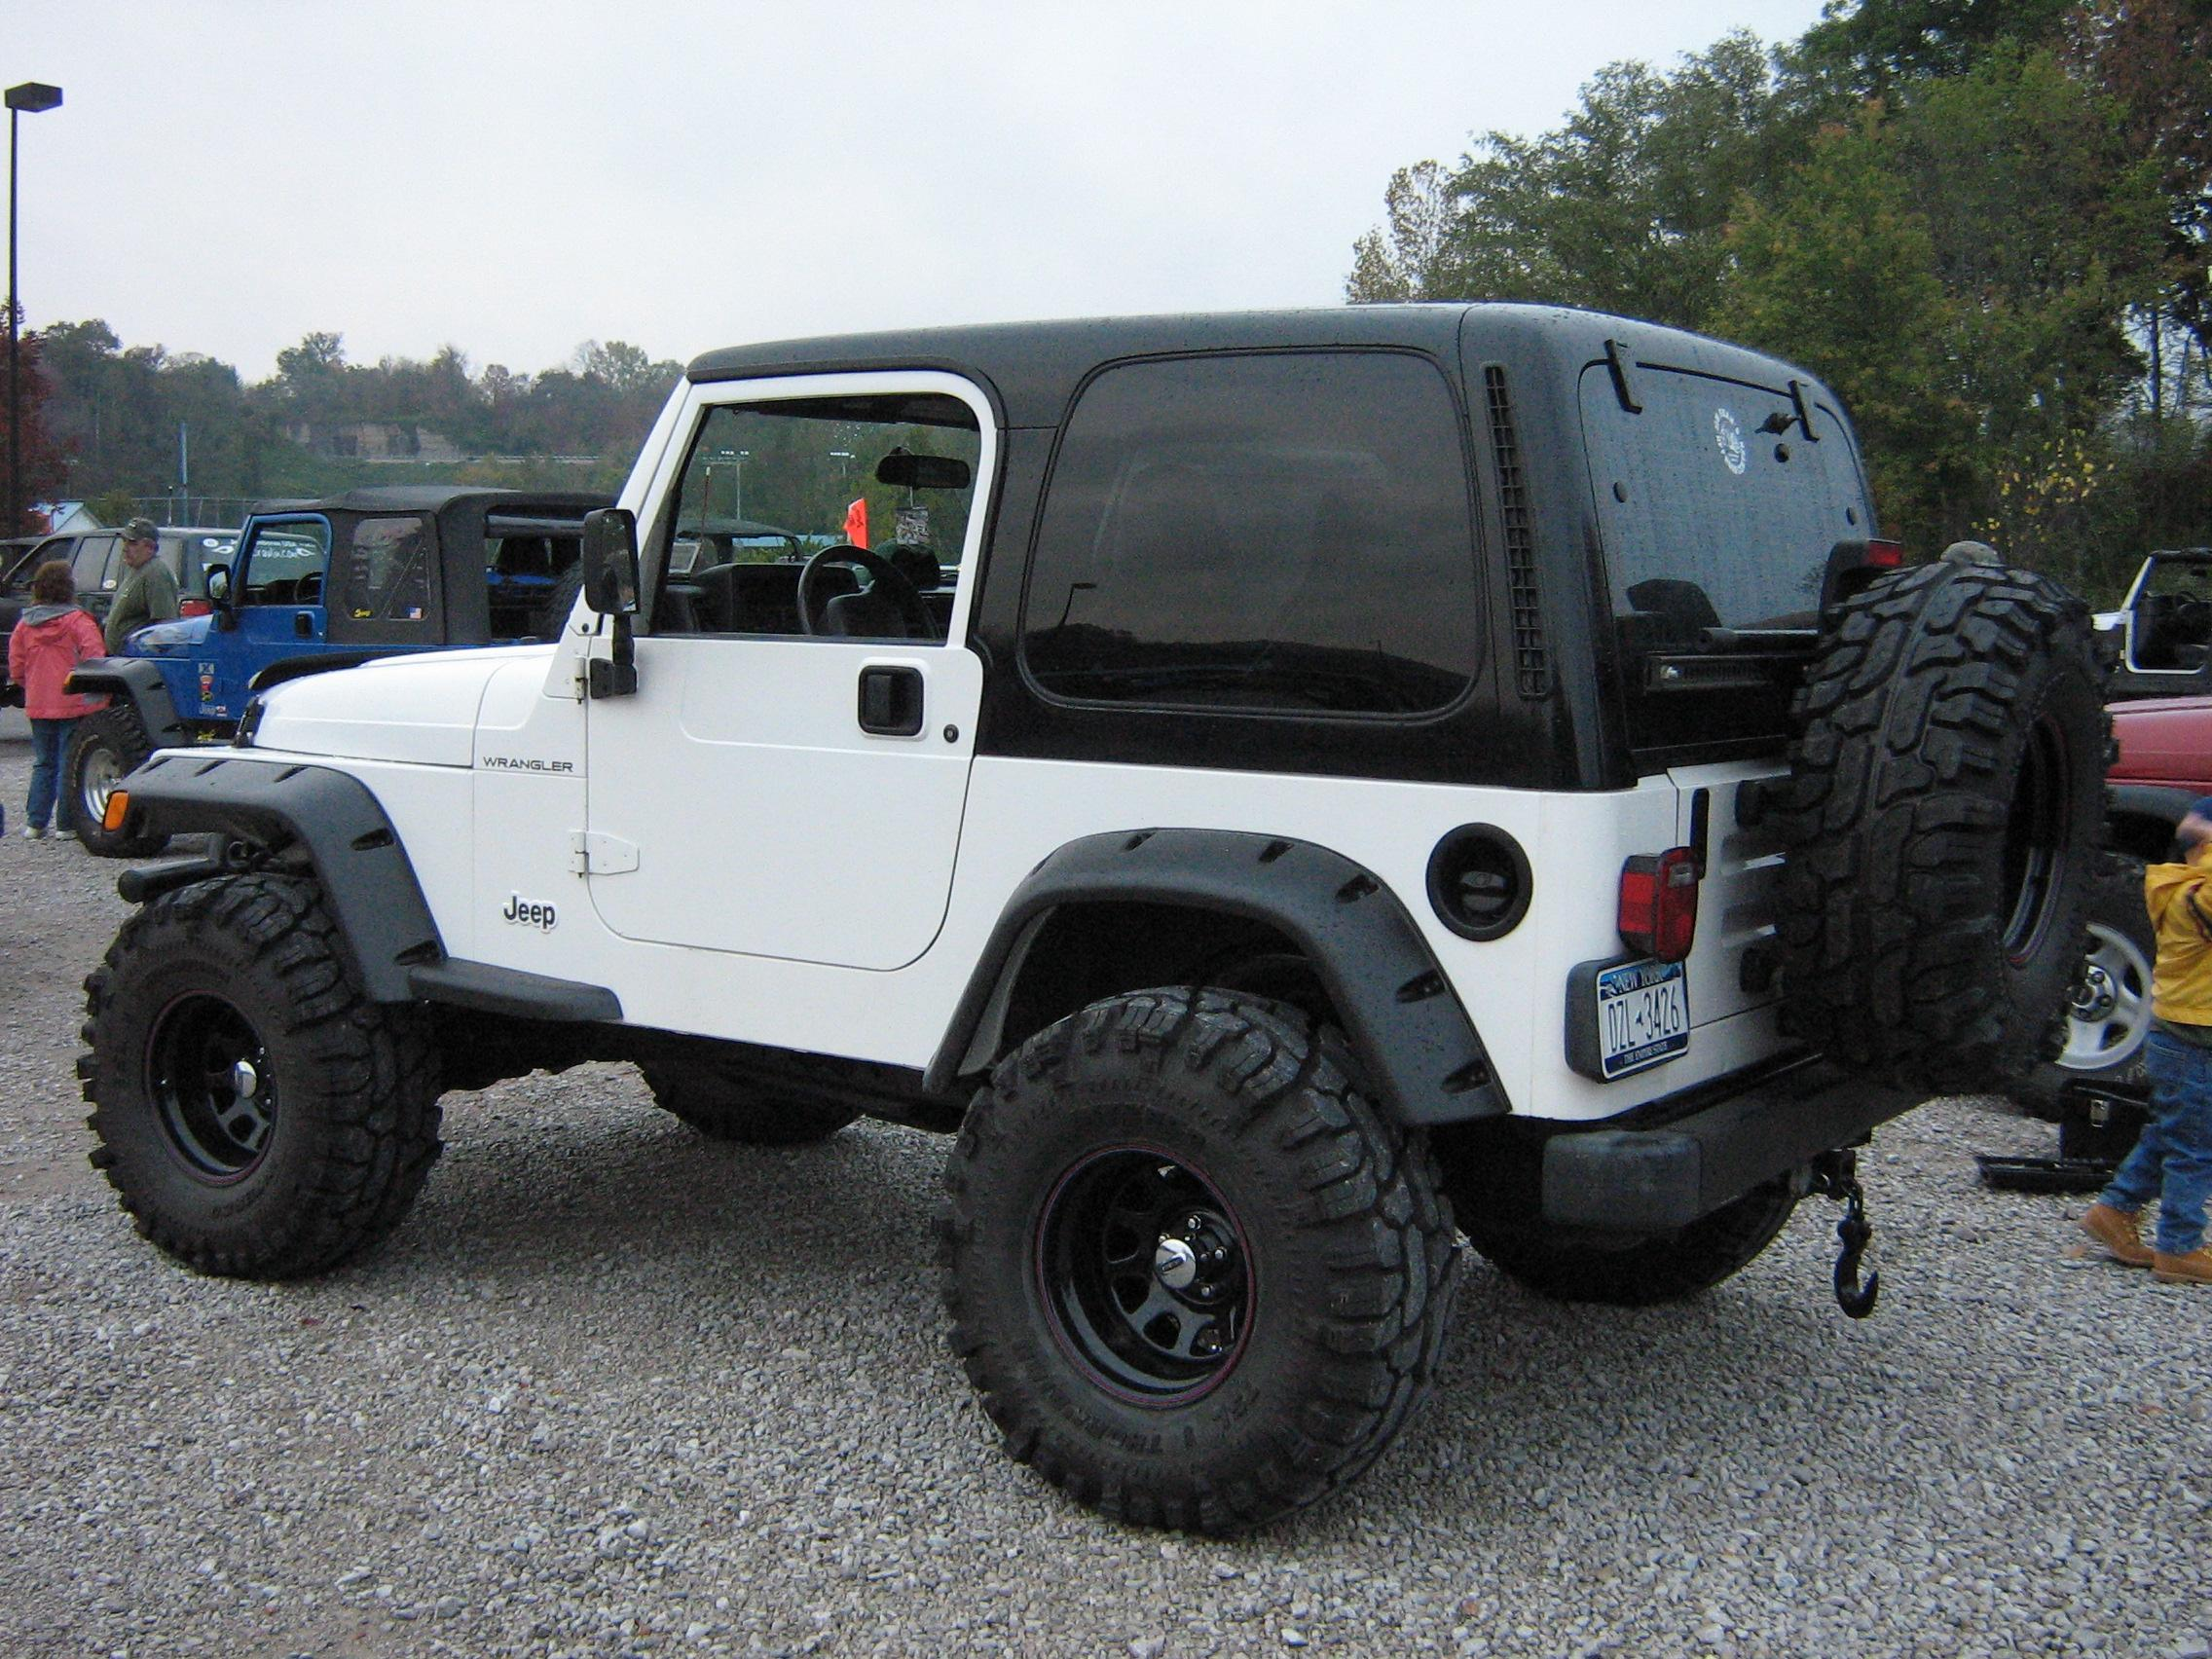 85gmcgirl 2002 Jeep Wrangler Specs Photos Modification Info at